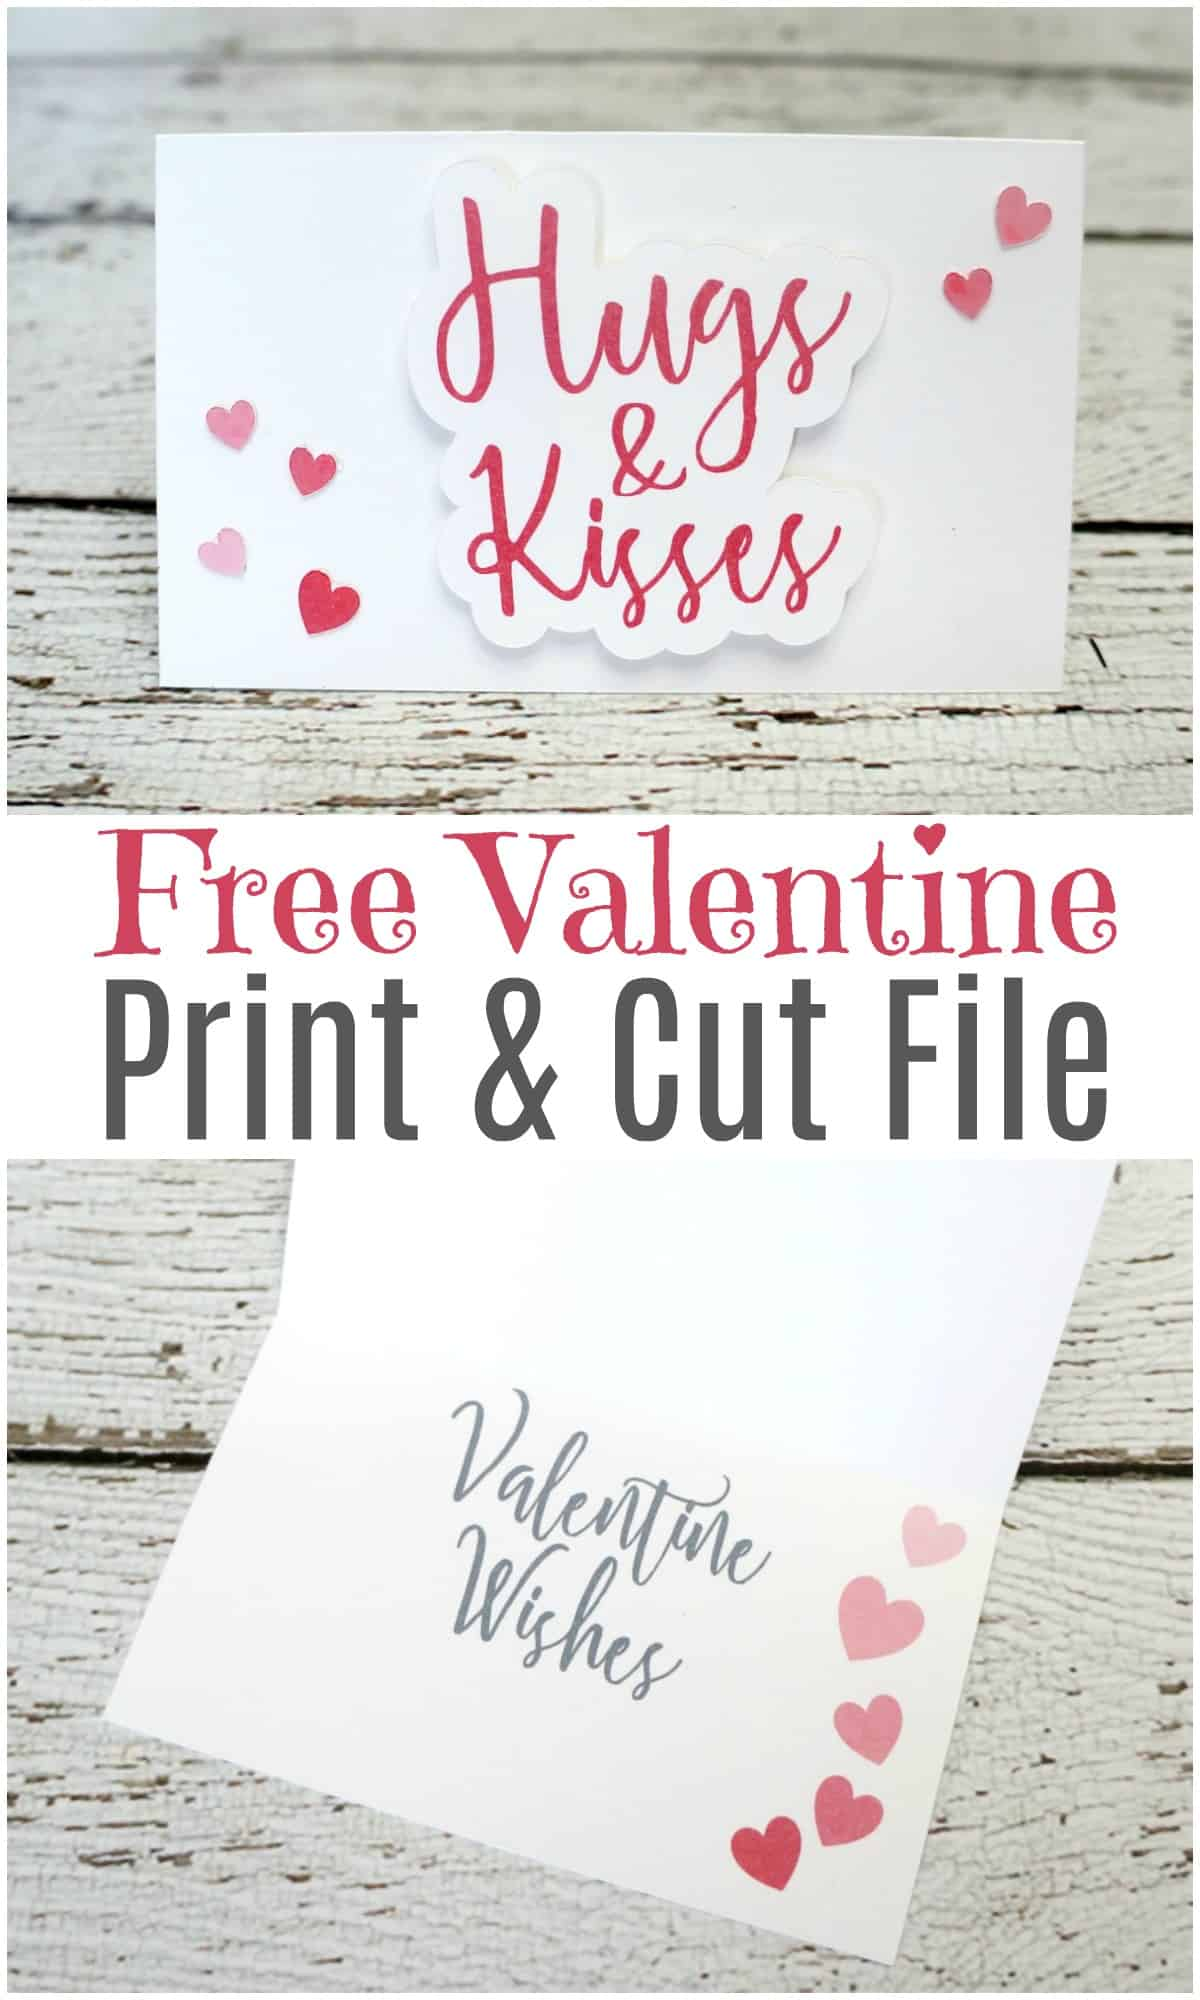 Free valentine print and cut file for Silhouette. Hugs and kisses valentine wishes card